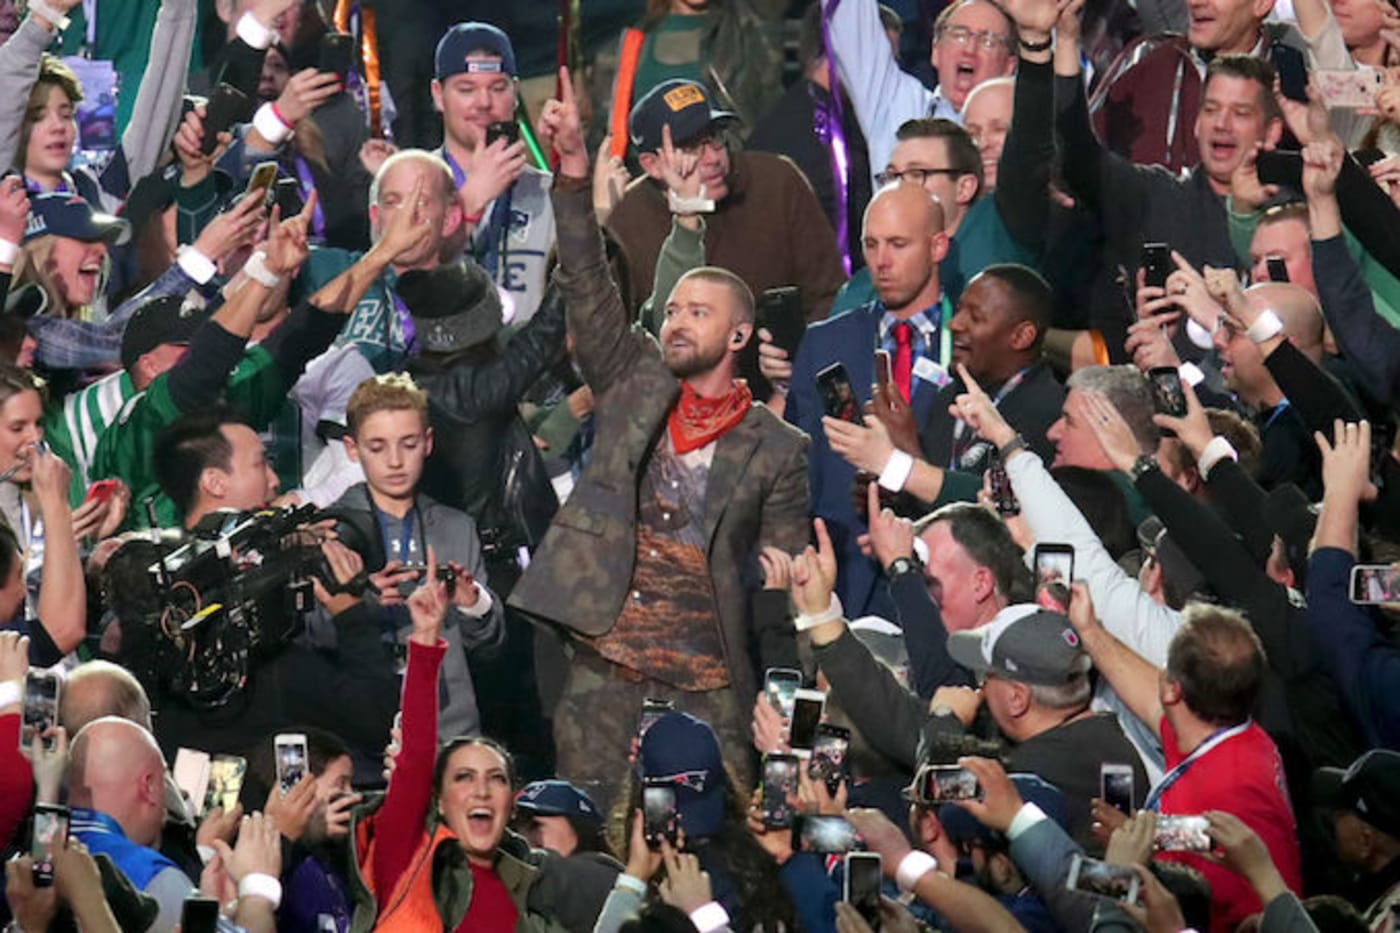 This is a picture of Justin Timberlake.